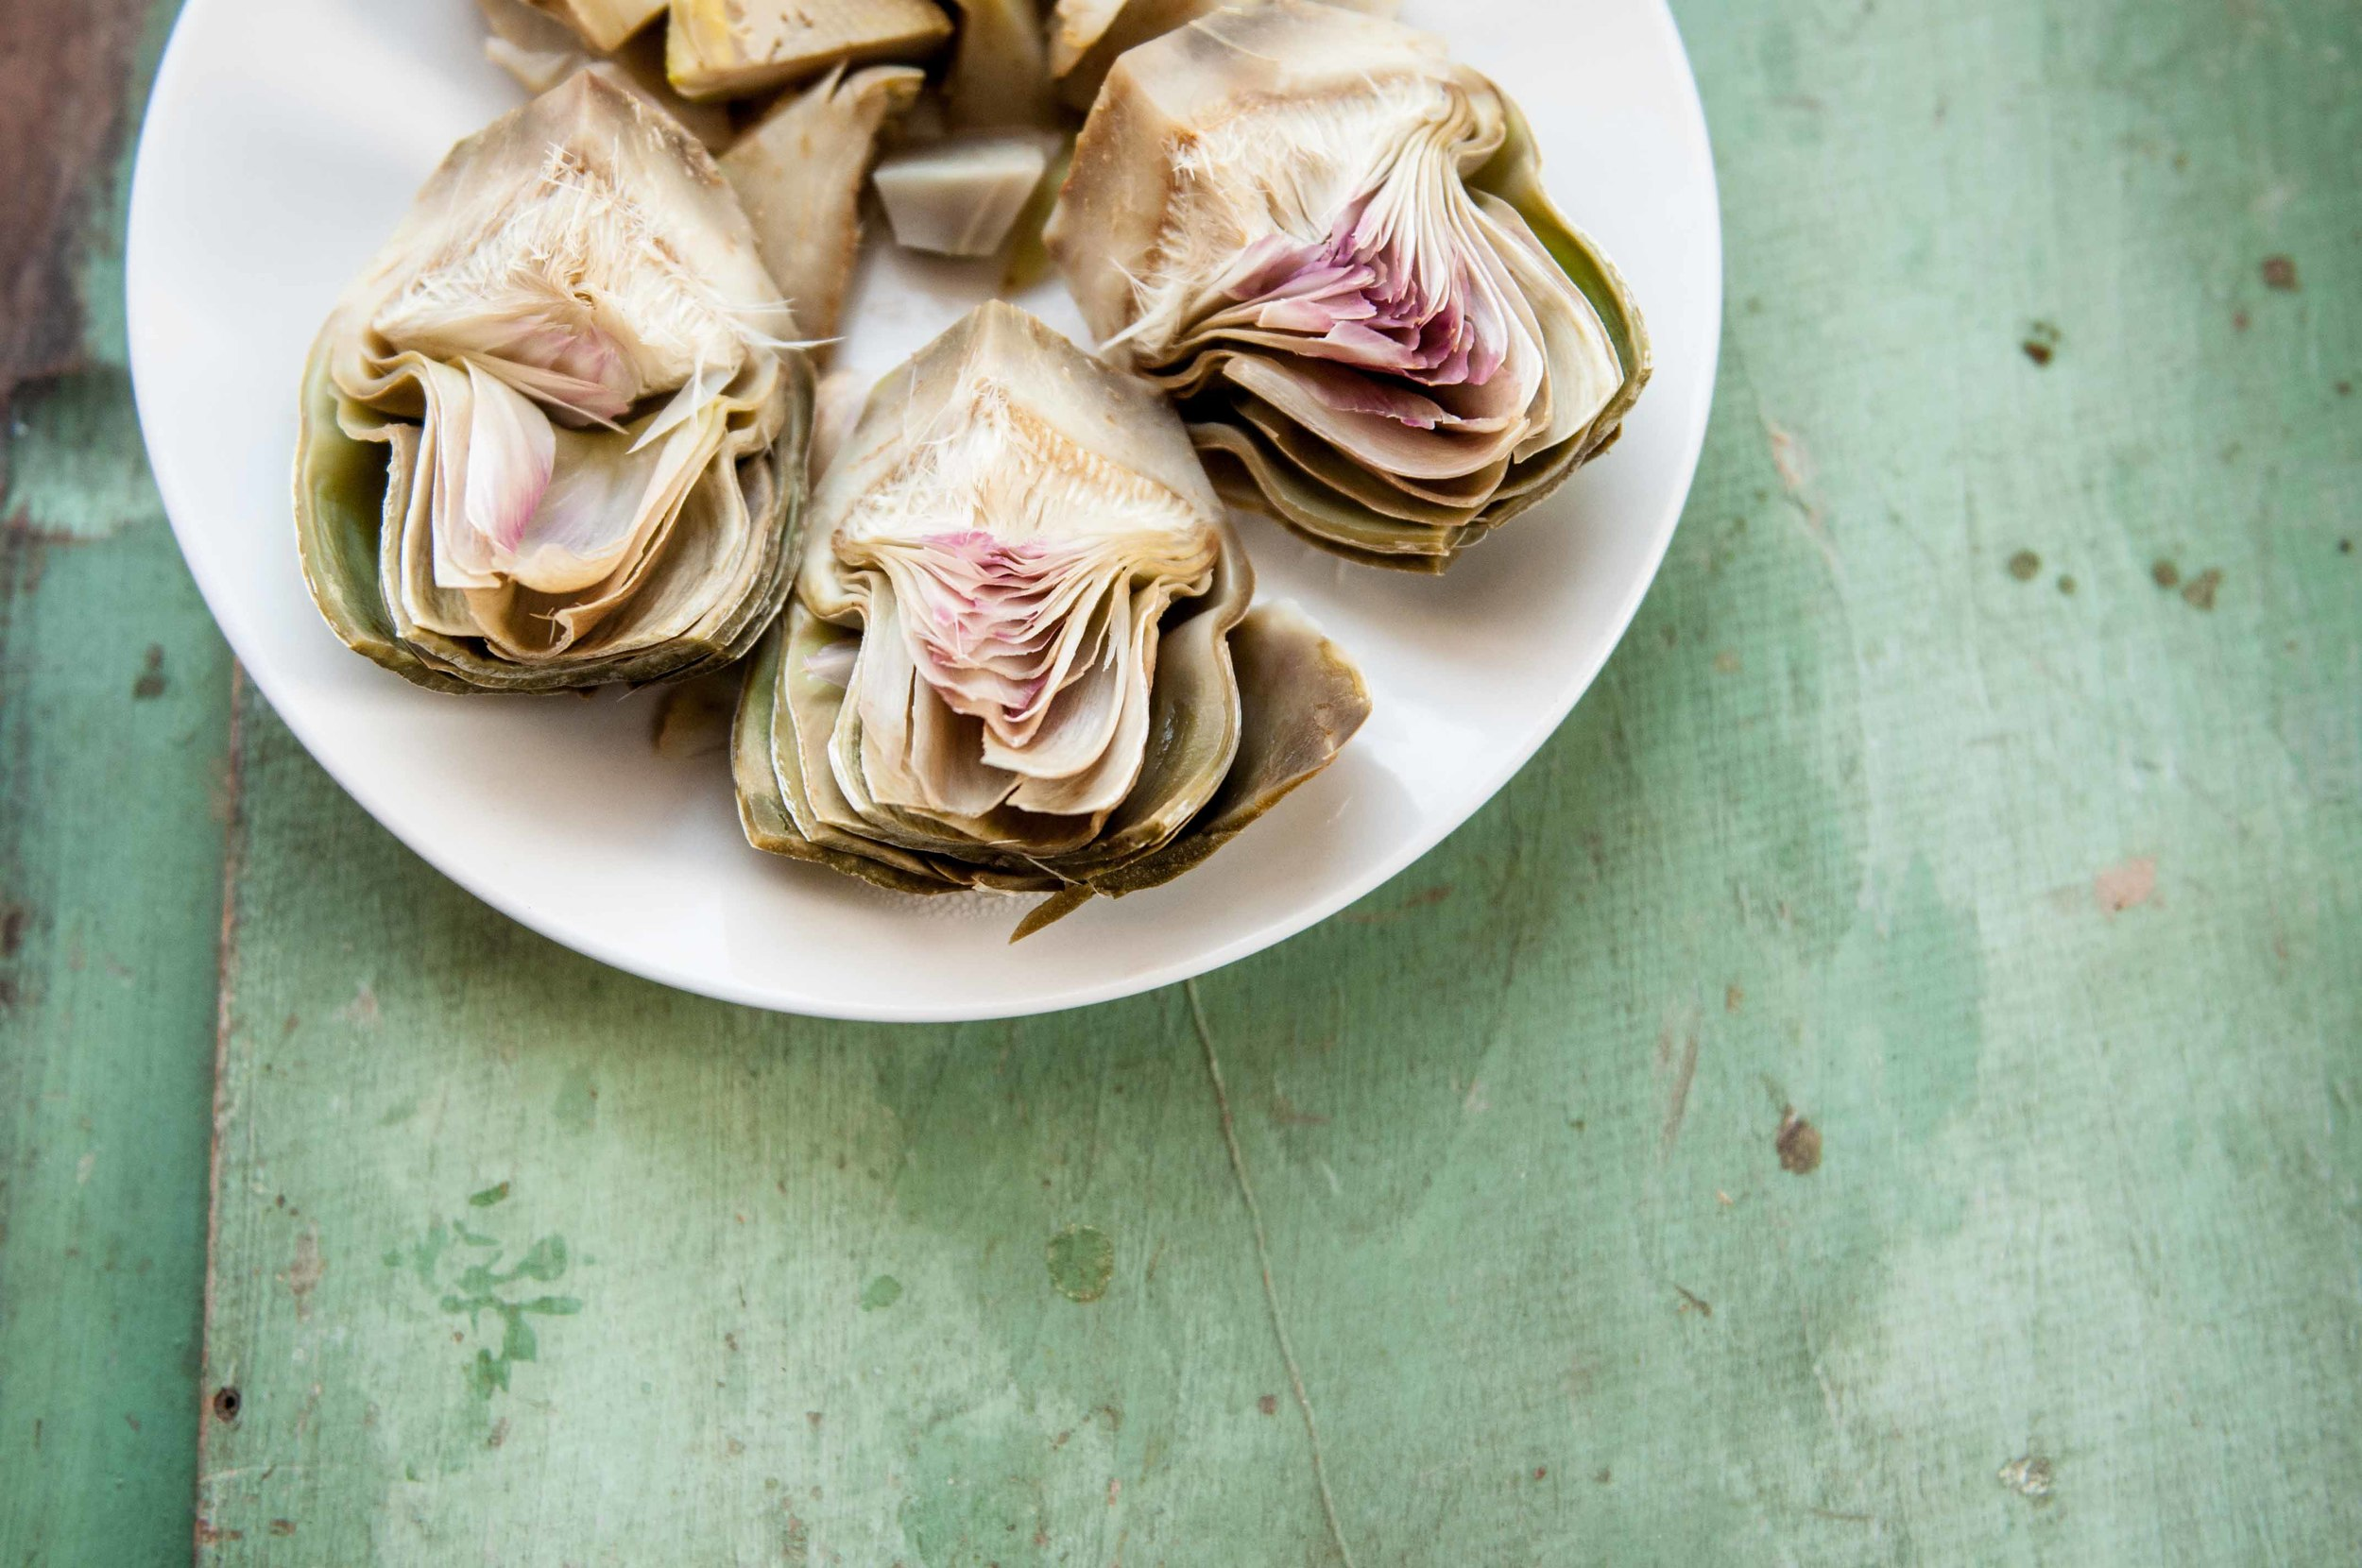 Artichokes blanched in lemon water salted generously. The lemon is key!